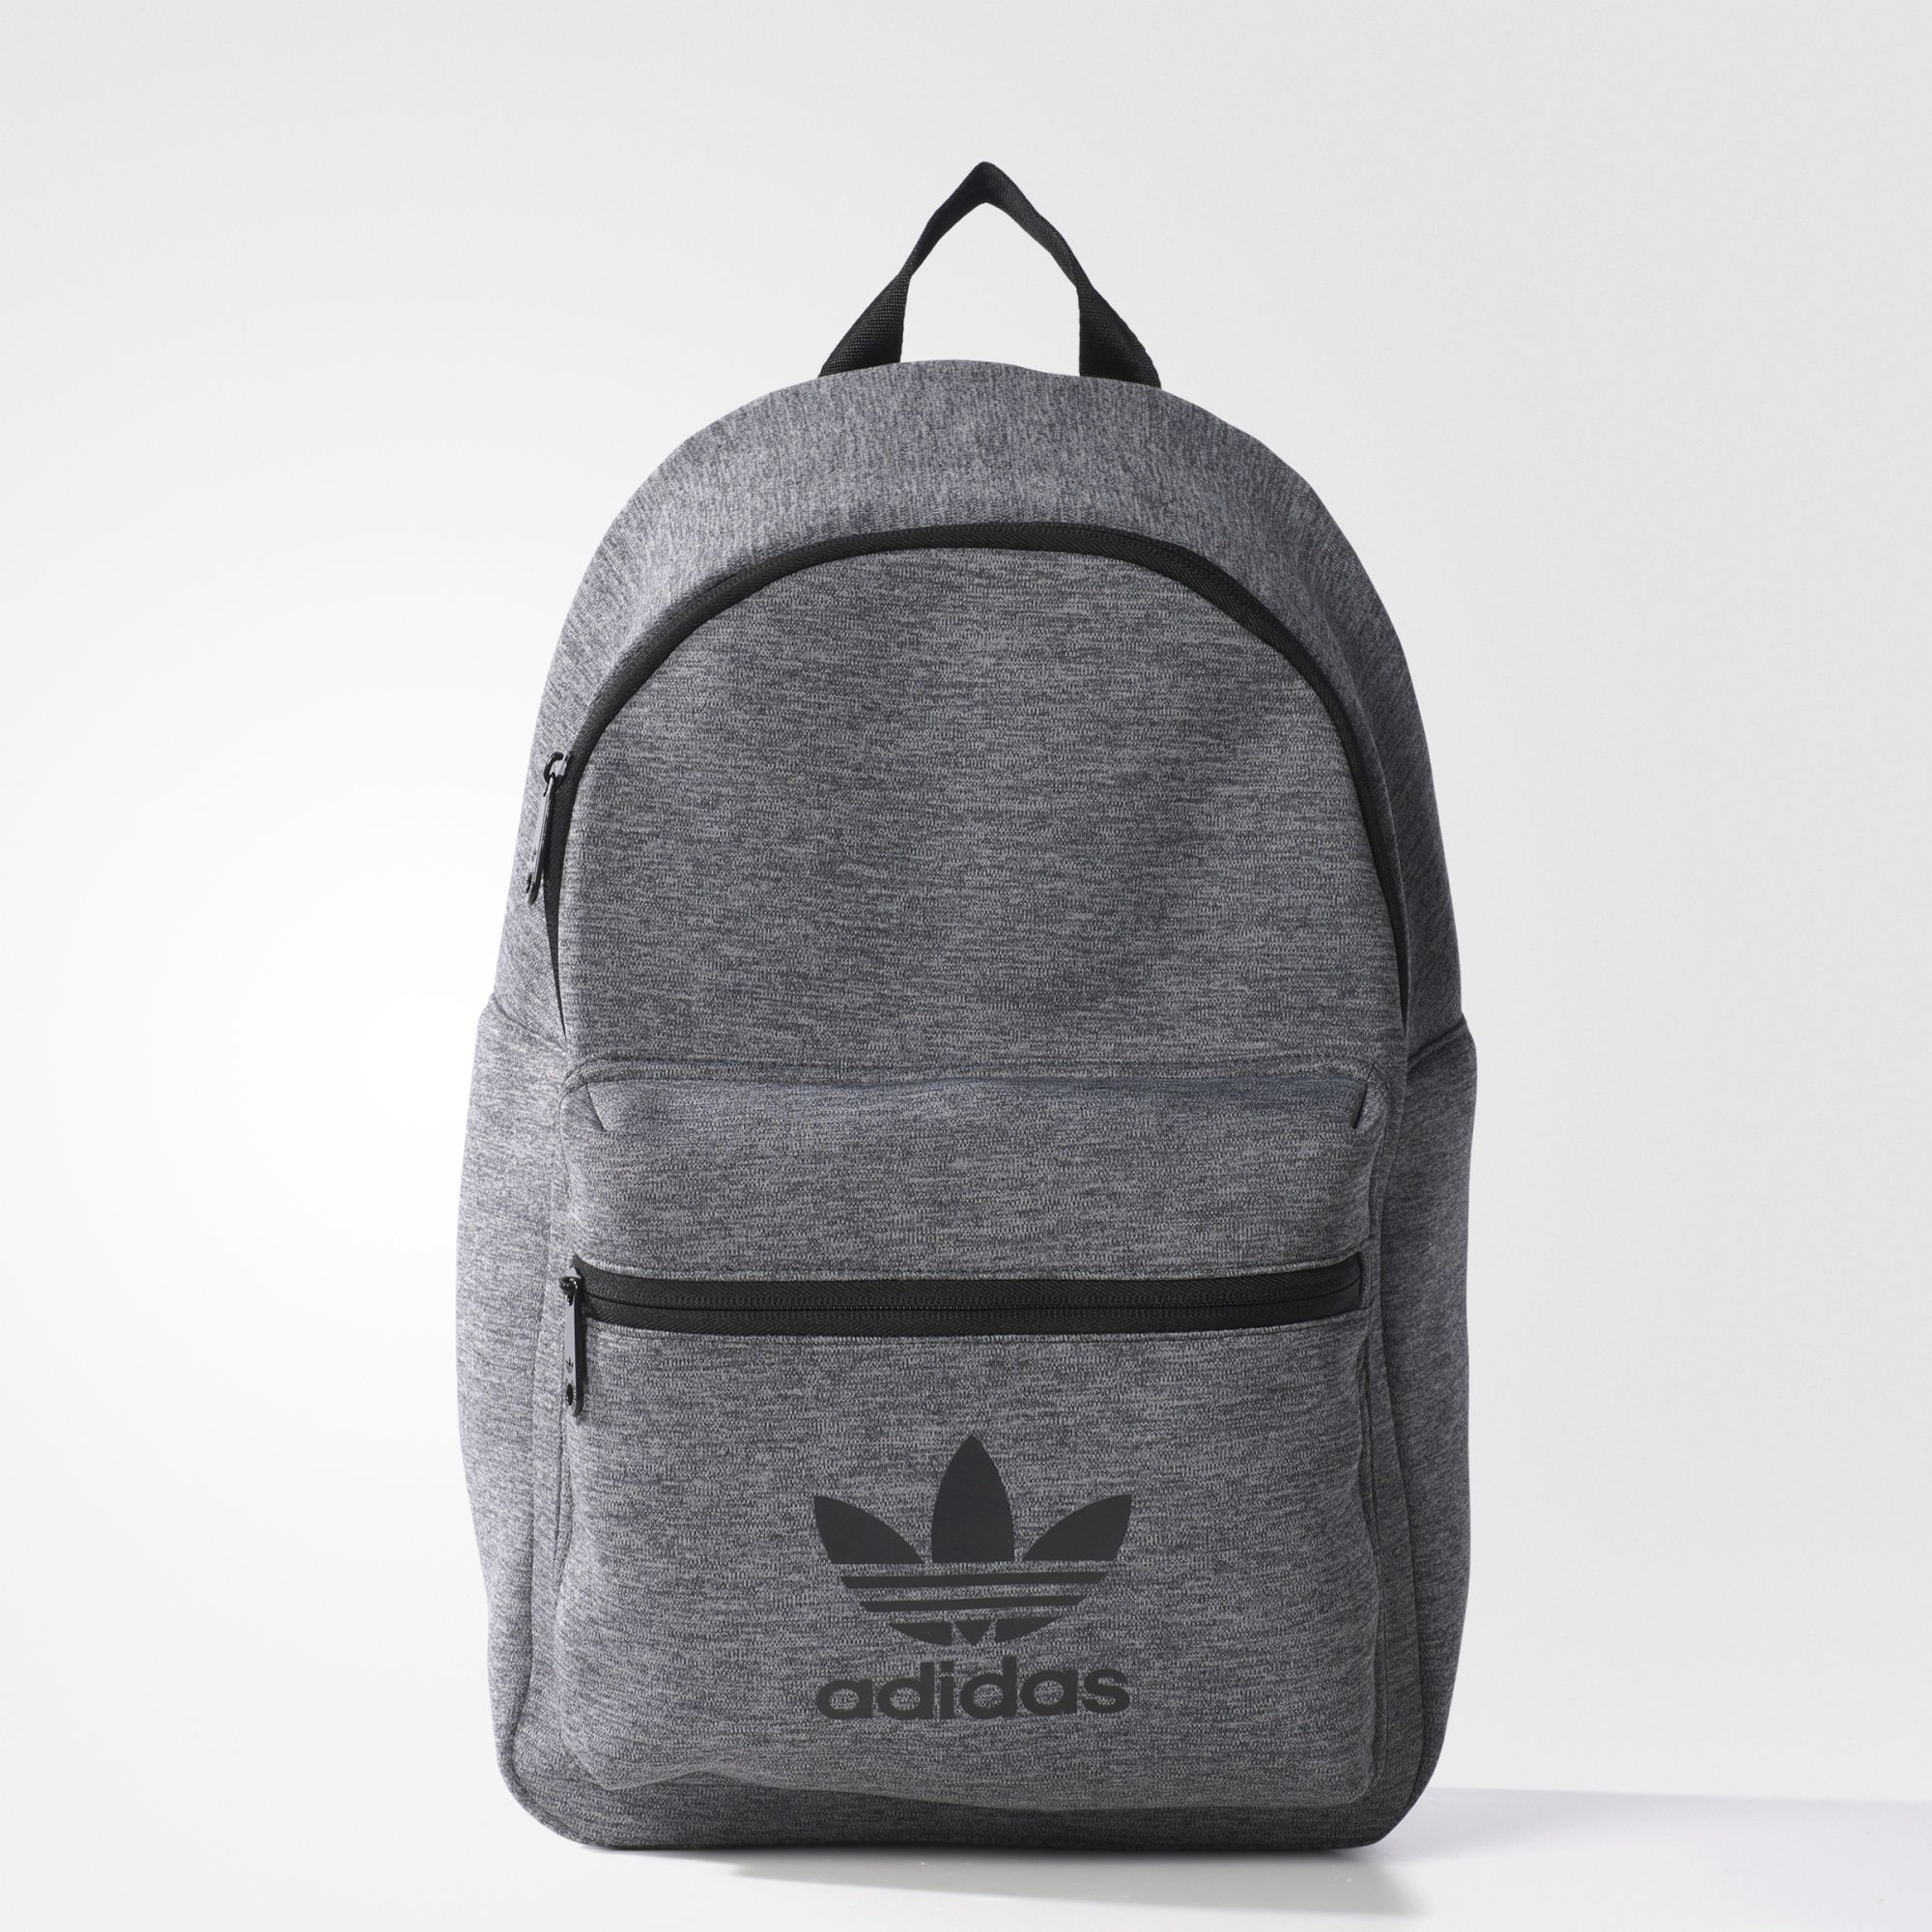 45f43c46a94a Buy adidas backpack australia   OFF69% Discounted